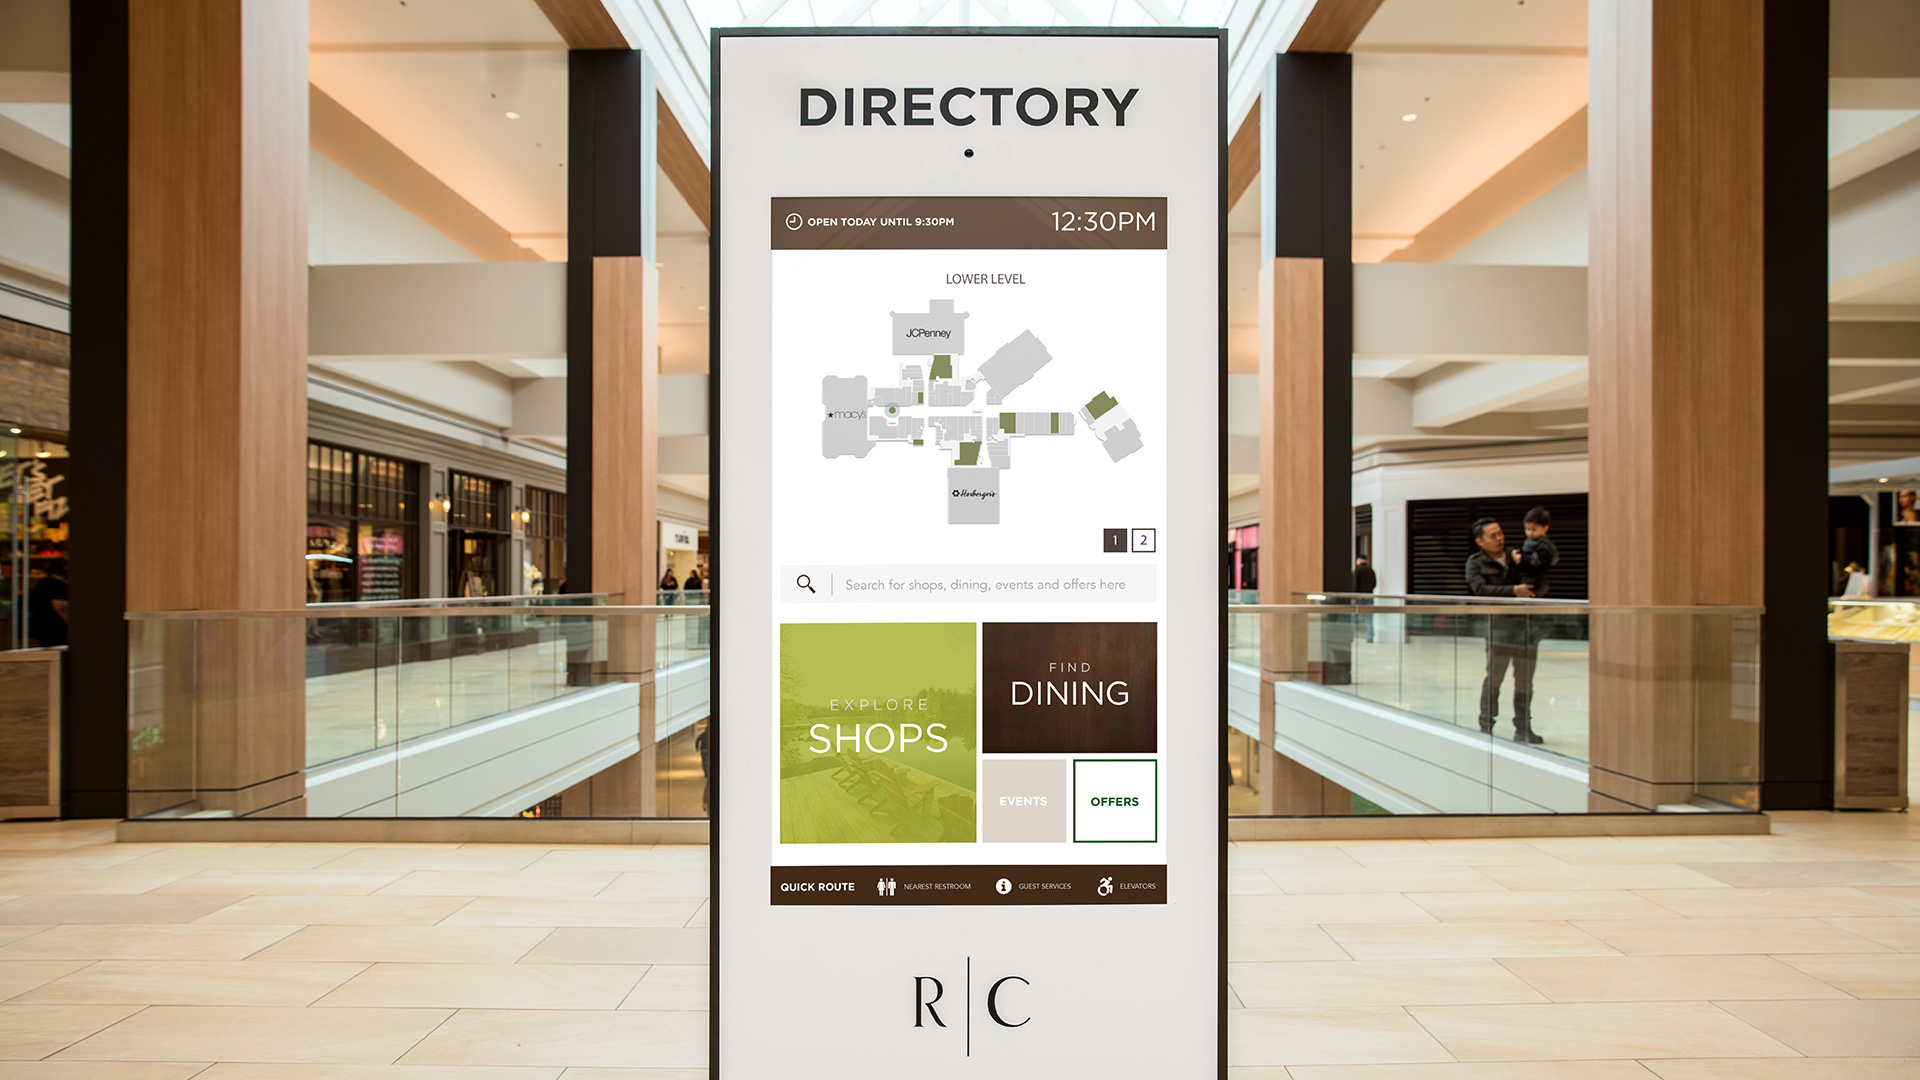 Digital Wayfinding: Tips and Tricks for an Optimized Experience